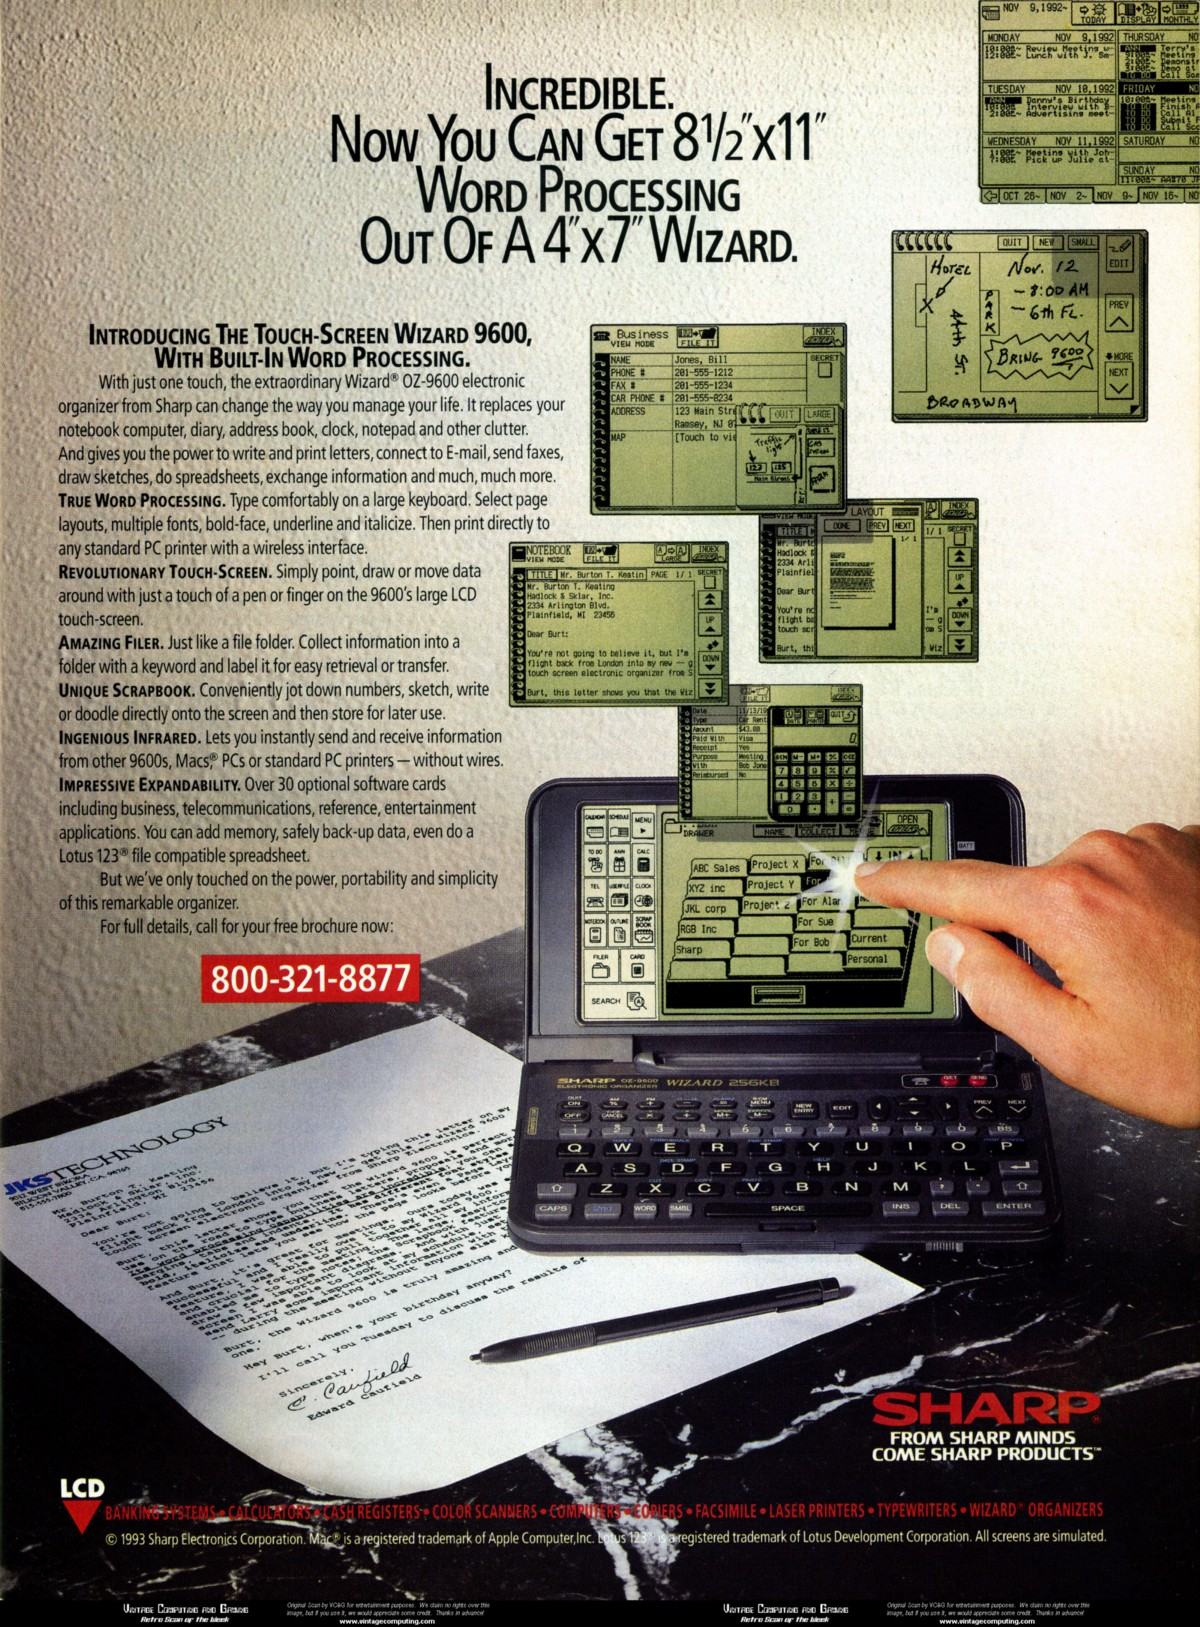 The Wizard devices were sold through the 1990s — this ad for 1994's OZ-9600 shows off a new version's touchscreen. Credit: Sharp